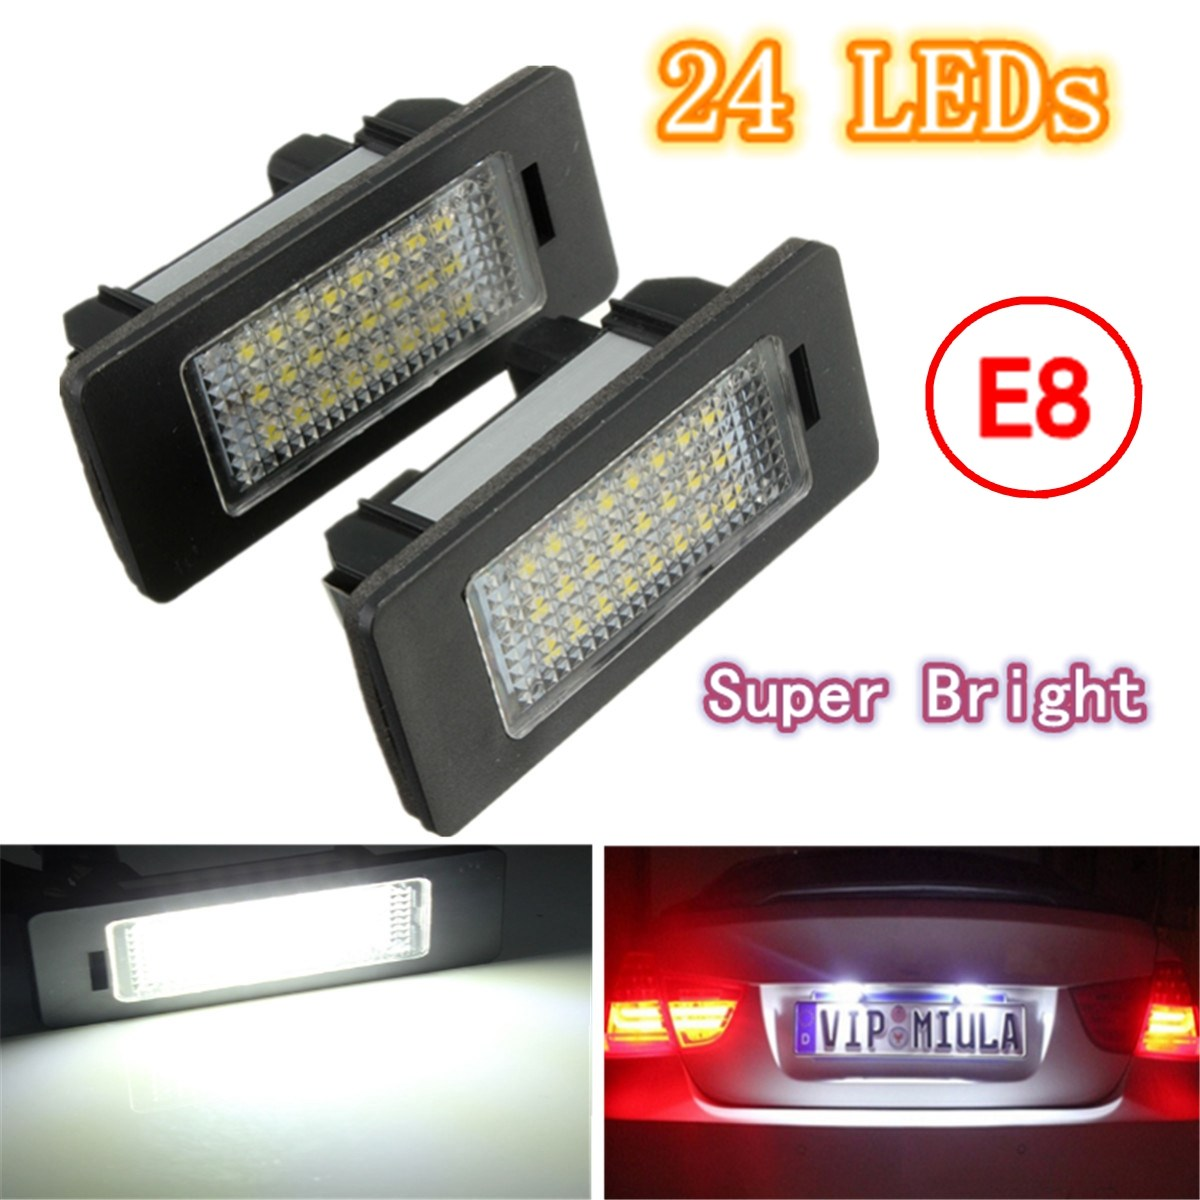 2X E-marked OBC Error Free 24 LED White License Number Plate Light Lamp For BMW E81 E82 E90 E91 E92 E93 E60 E61 E39 X1/E84 direct fit white led license plate light lamps for honda civic city legend accord4d canbus free no obc error code